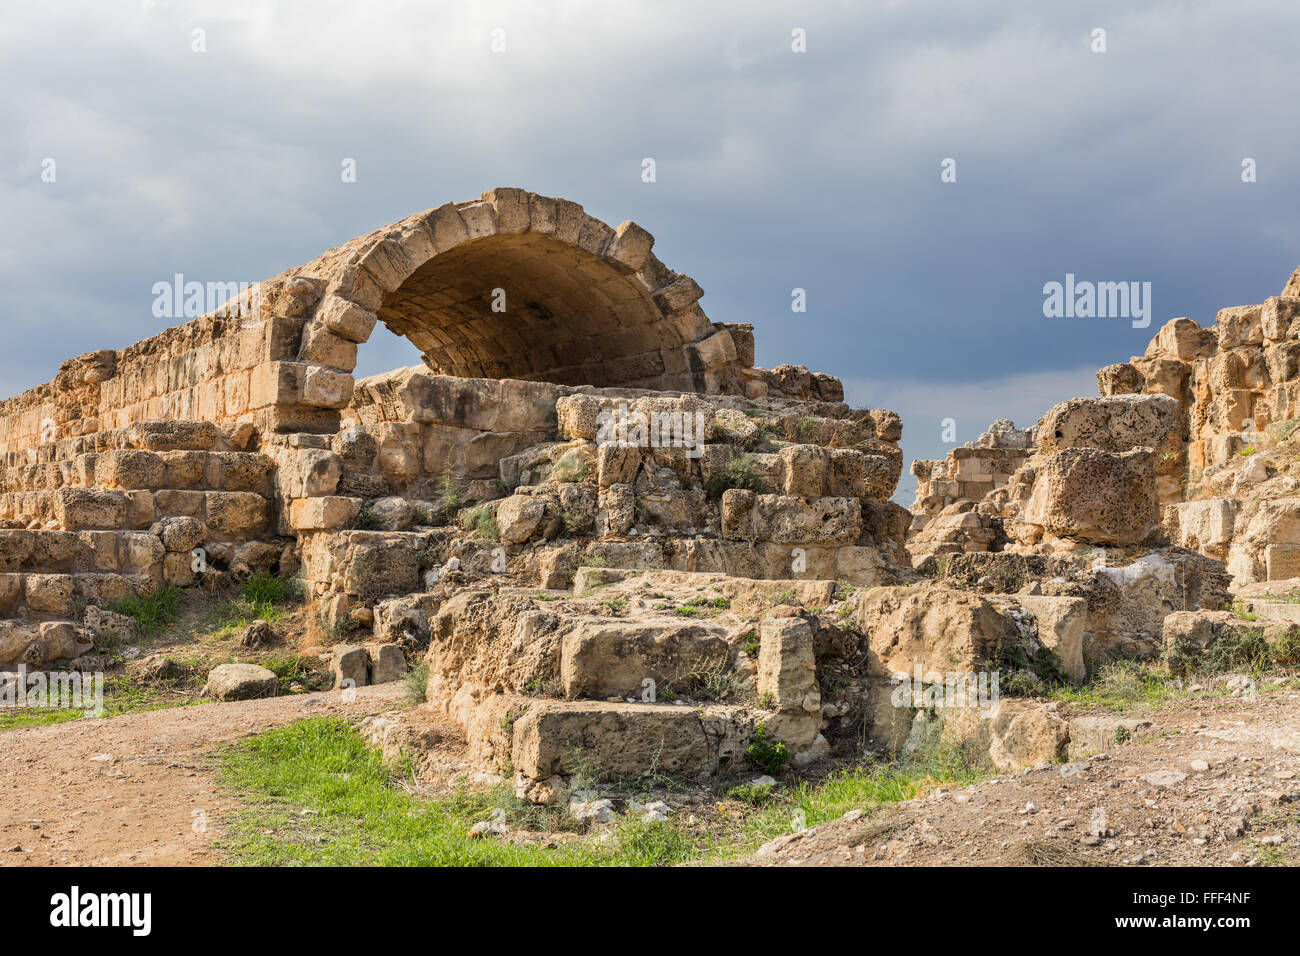 Ruins of ancient Greek city of Salamis, Northern Cyprus - Stock Image